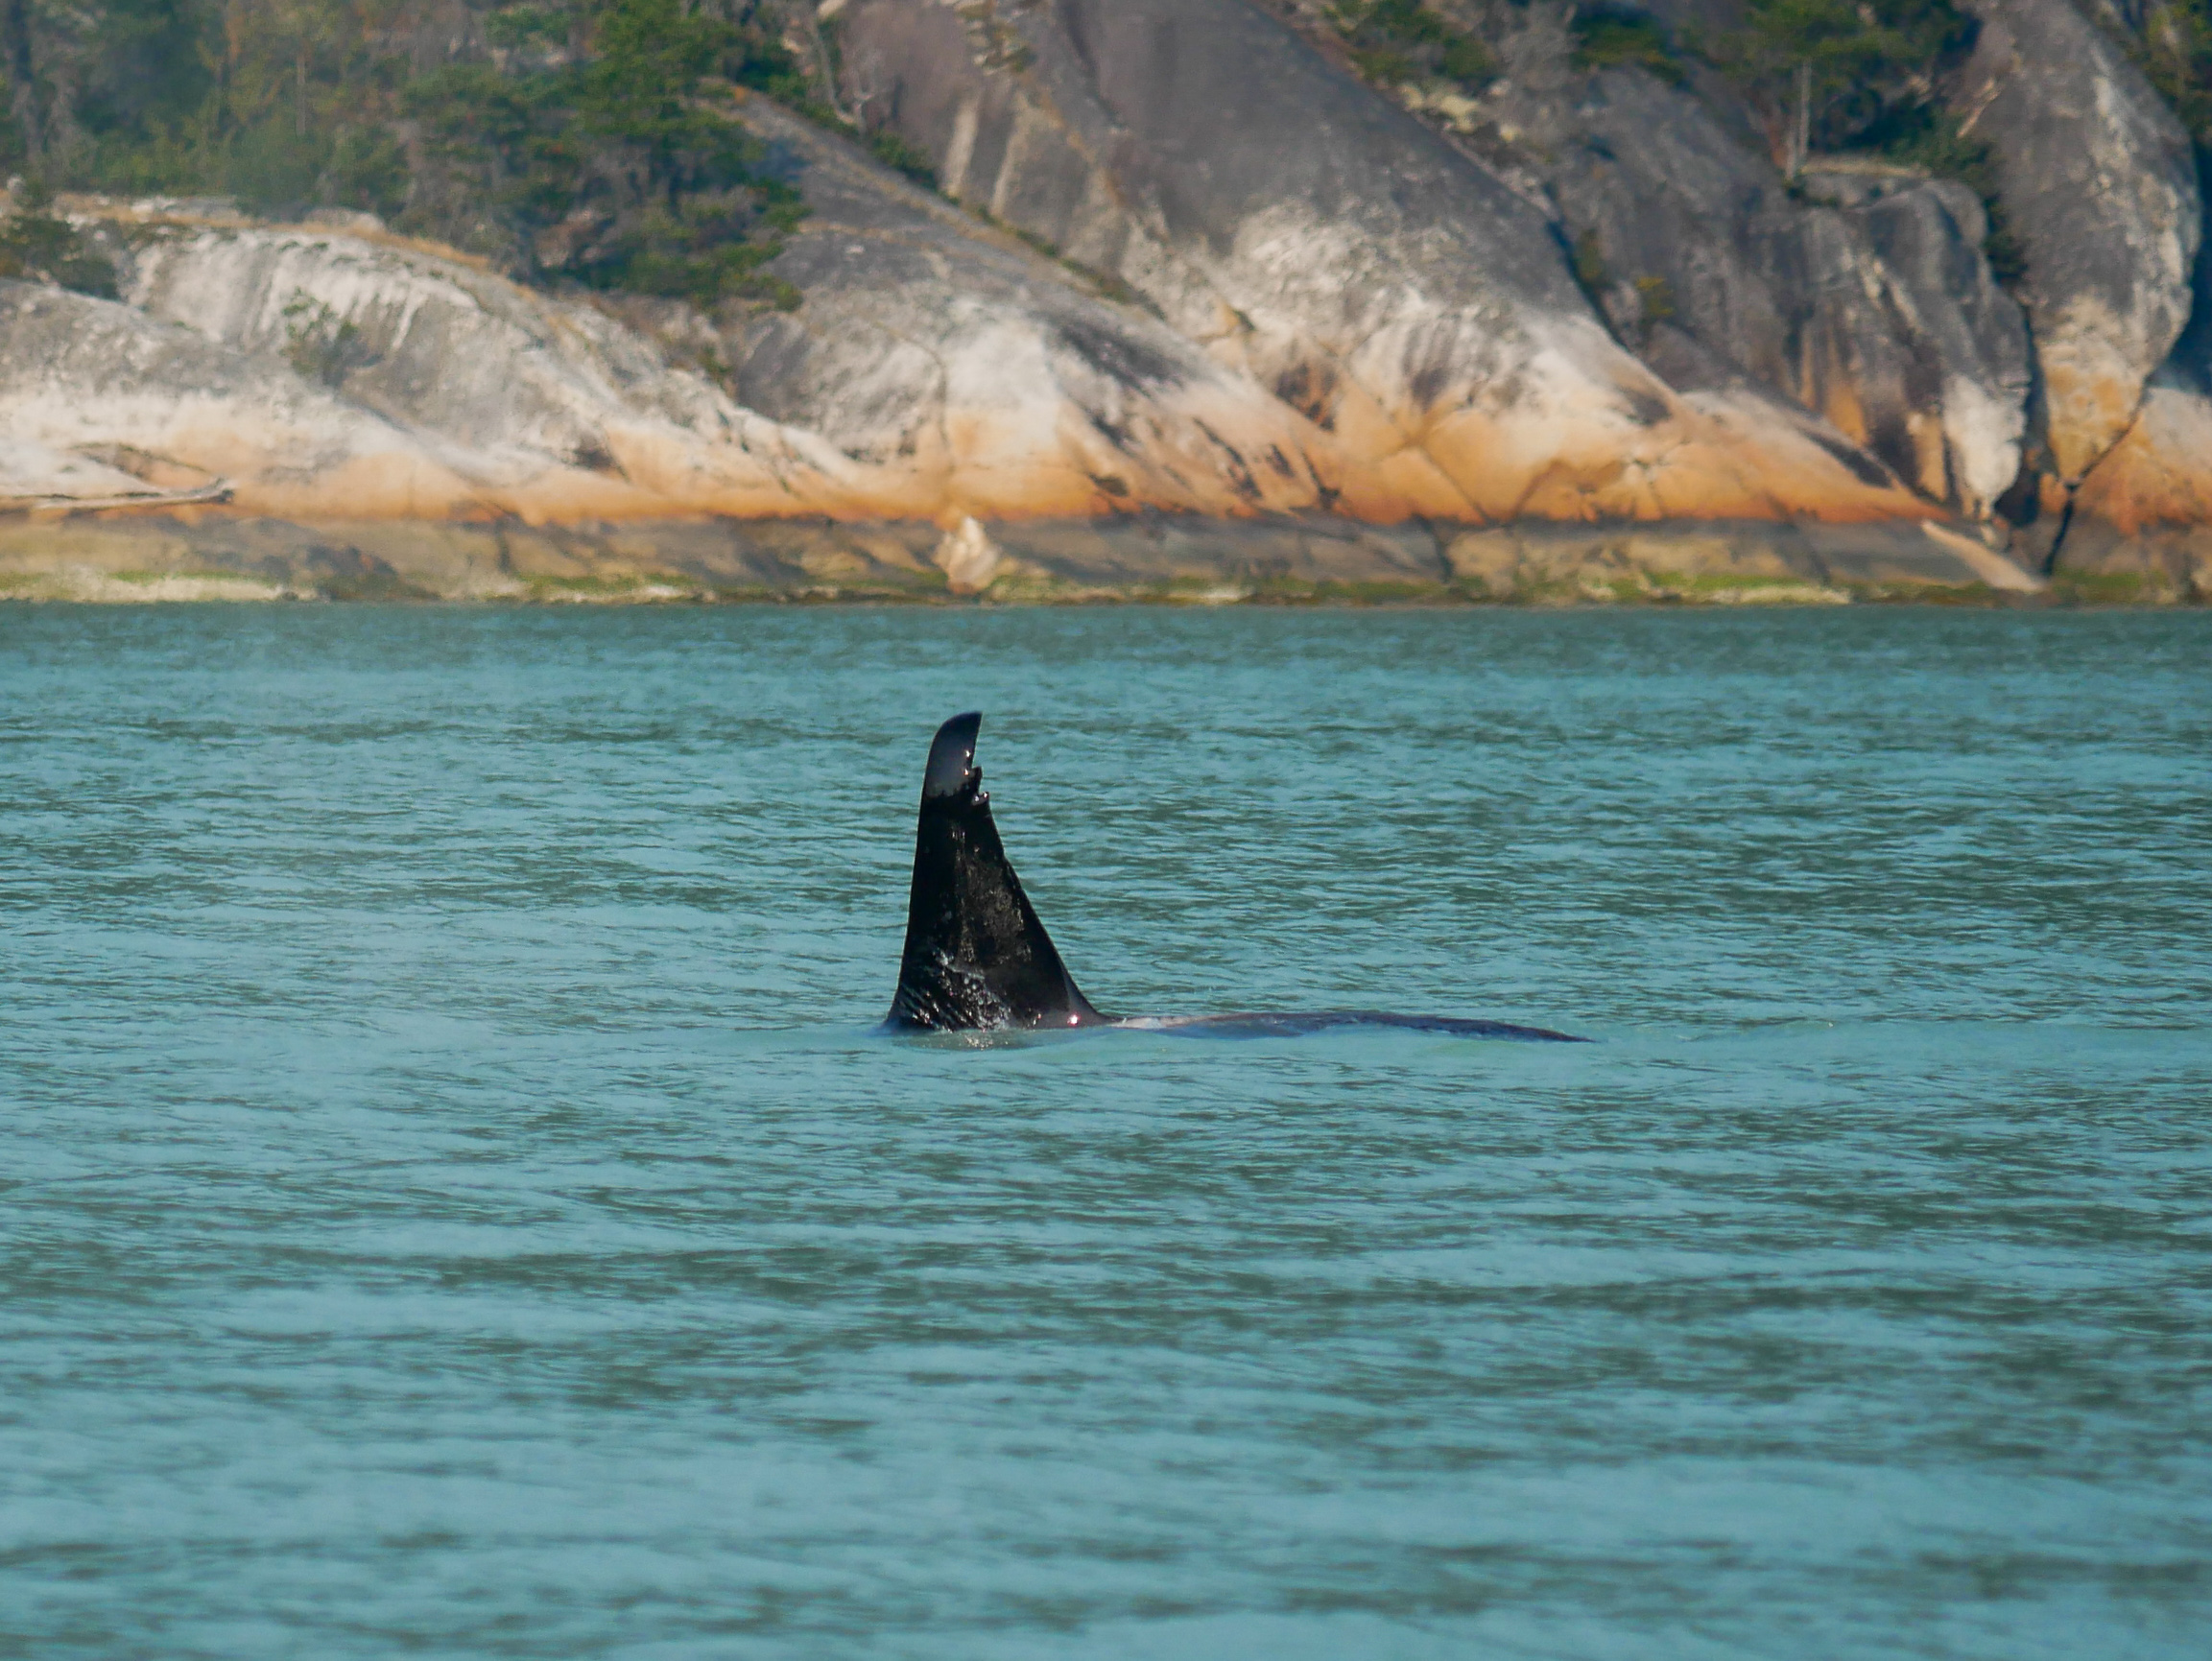 T46D's dorsal fin has very noticeable nicks on the top of it. Photo by Alanna Vivani.